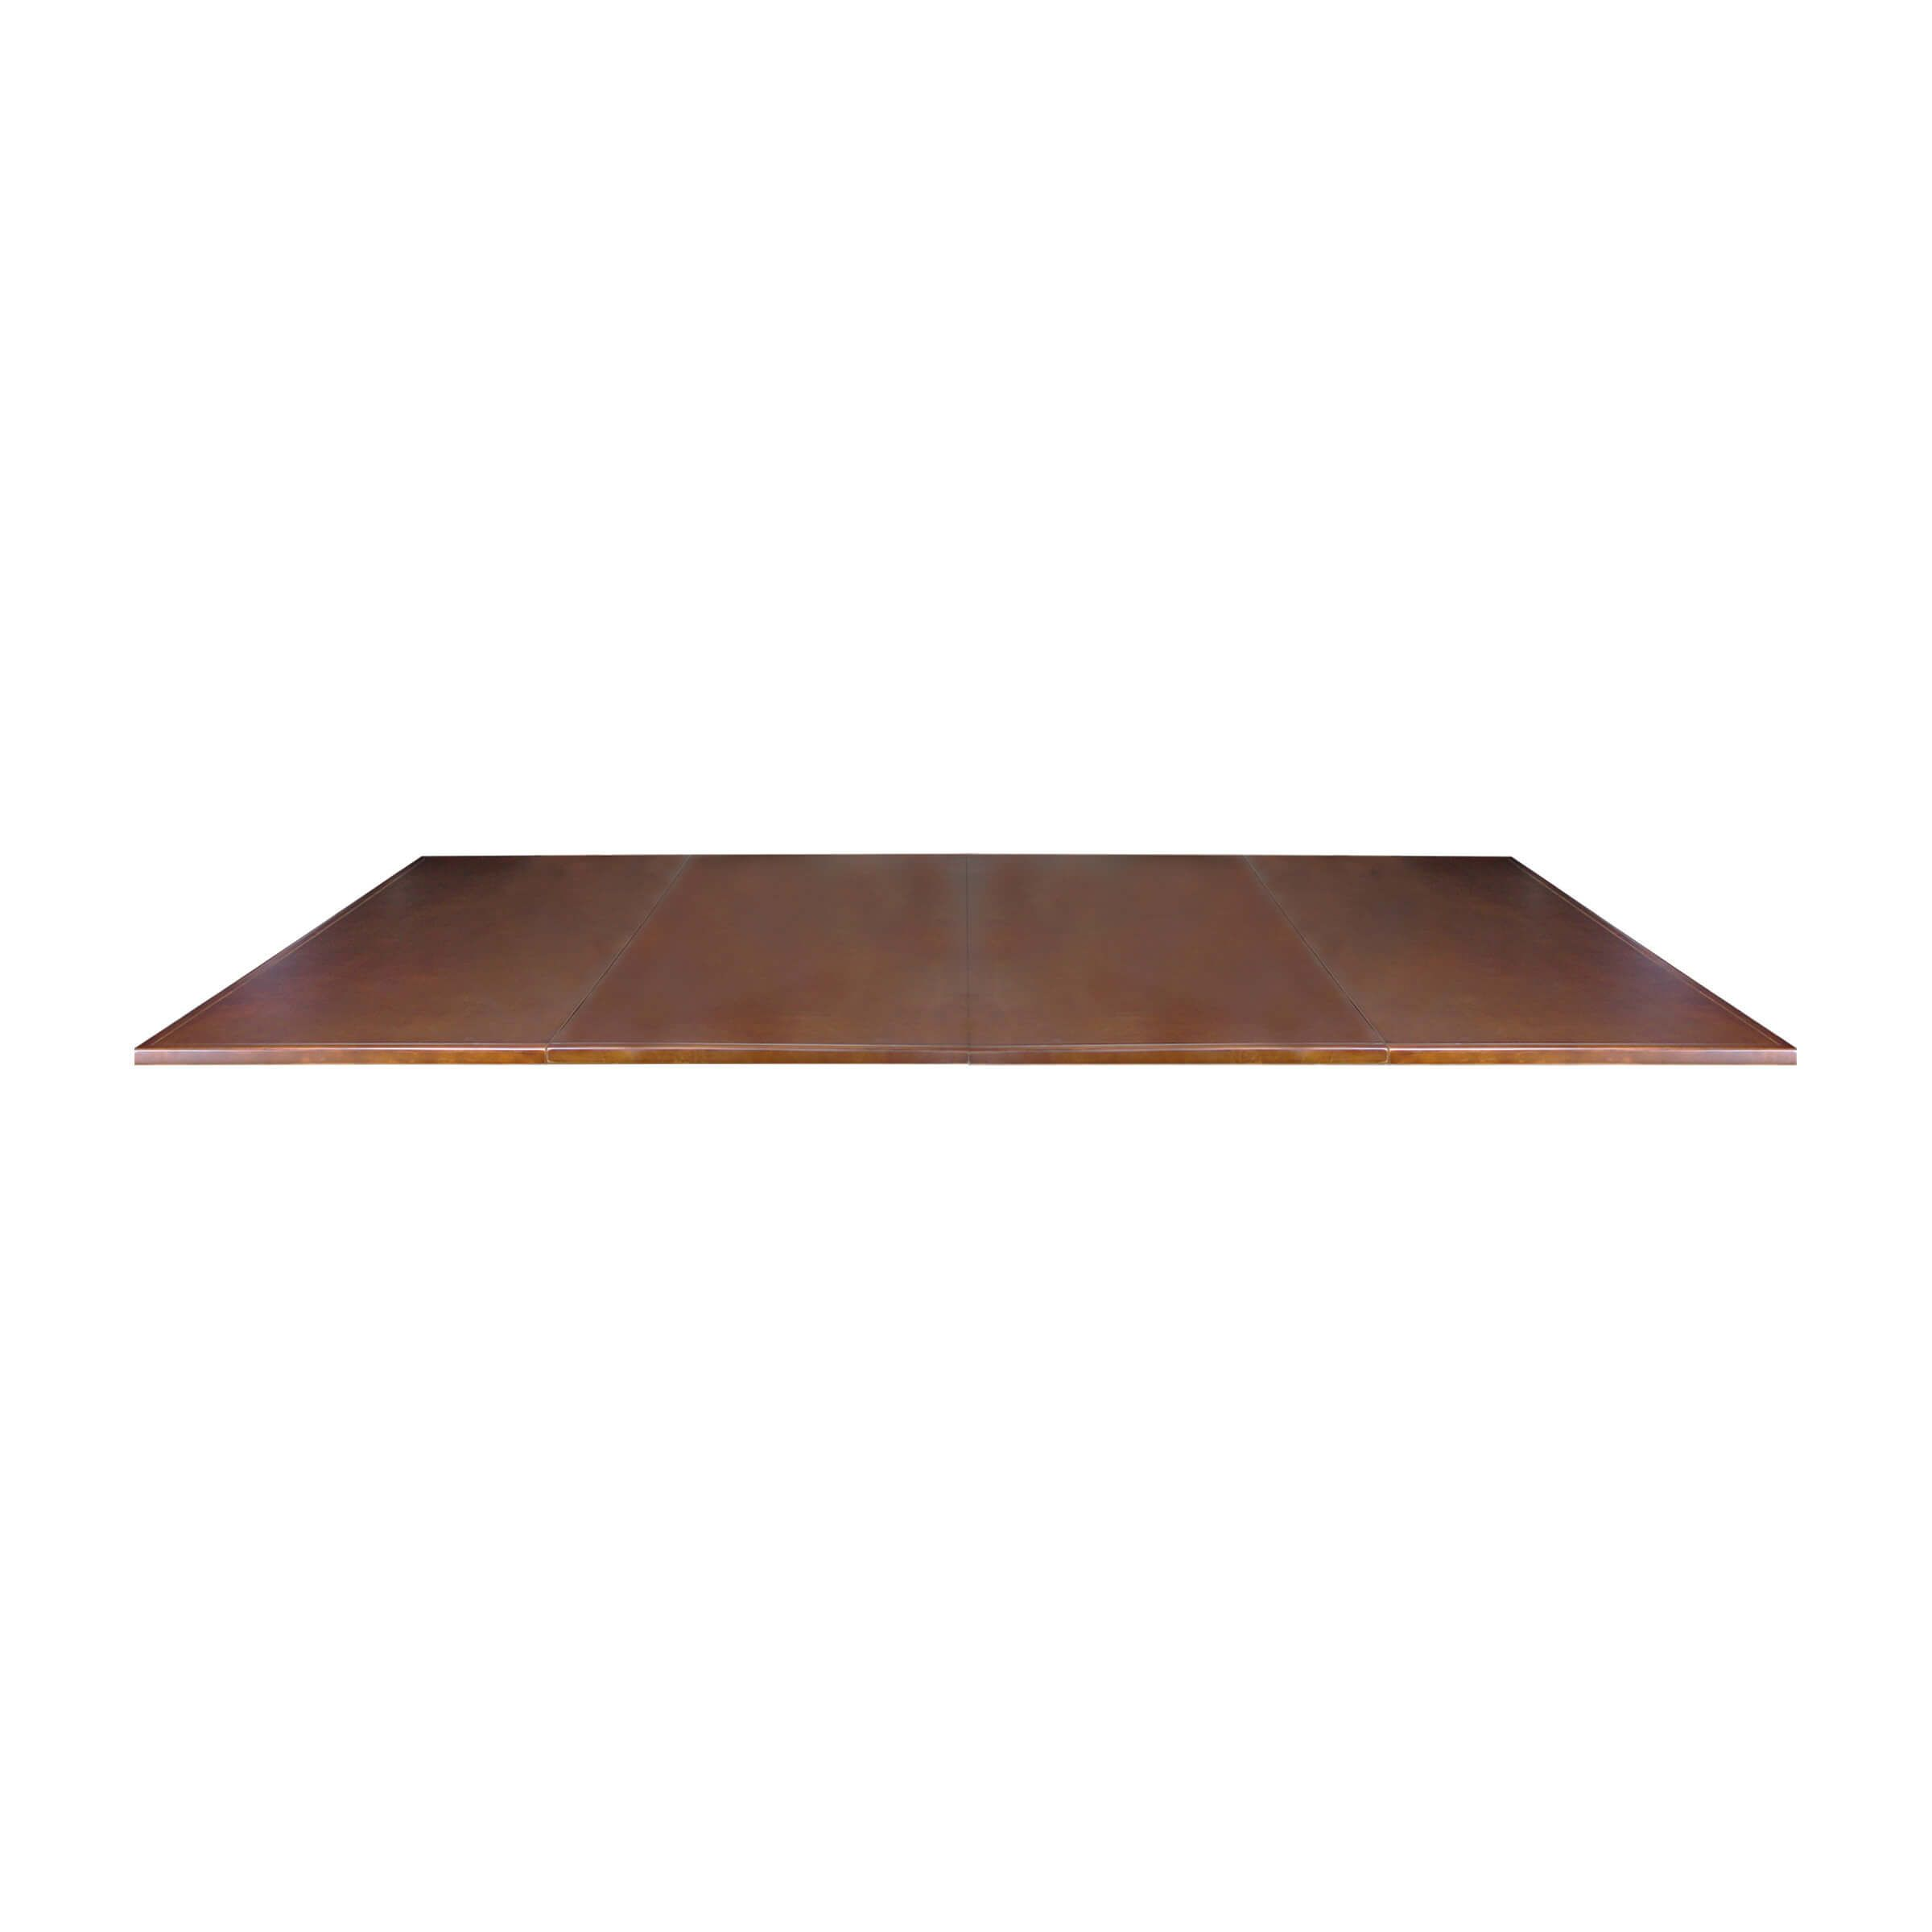 Dining Top That Fits 7 Ft Pool Tables Gives You The Extra Dining Space You Need At The Holidays Or Special Occasions 4 Pi Pool Table Accessories